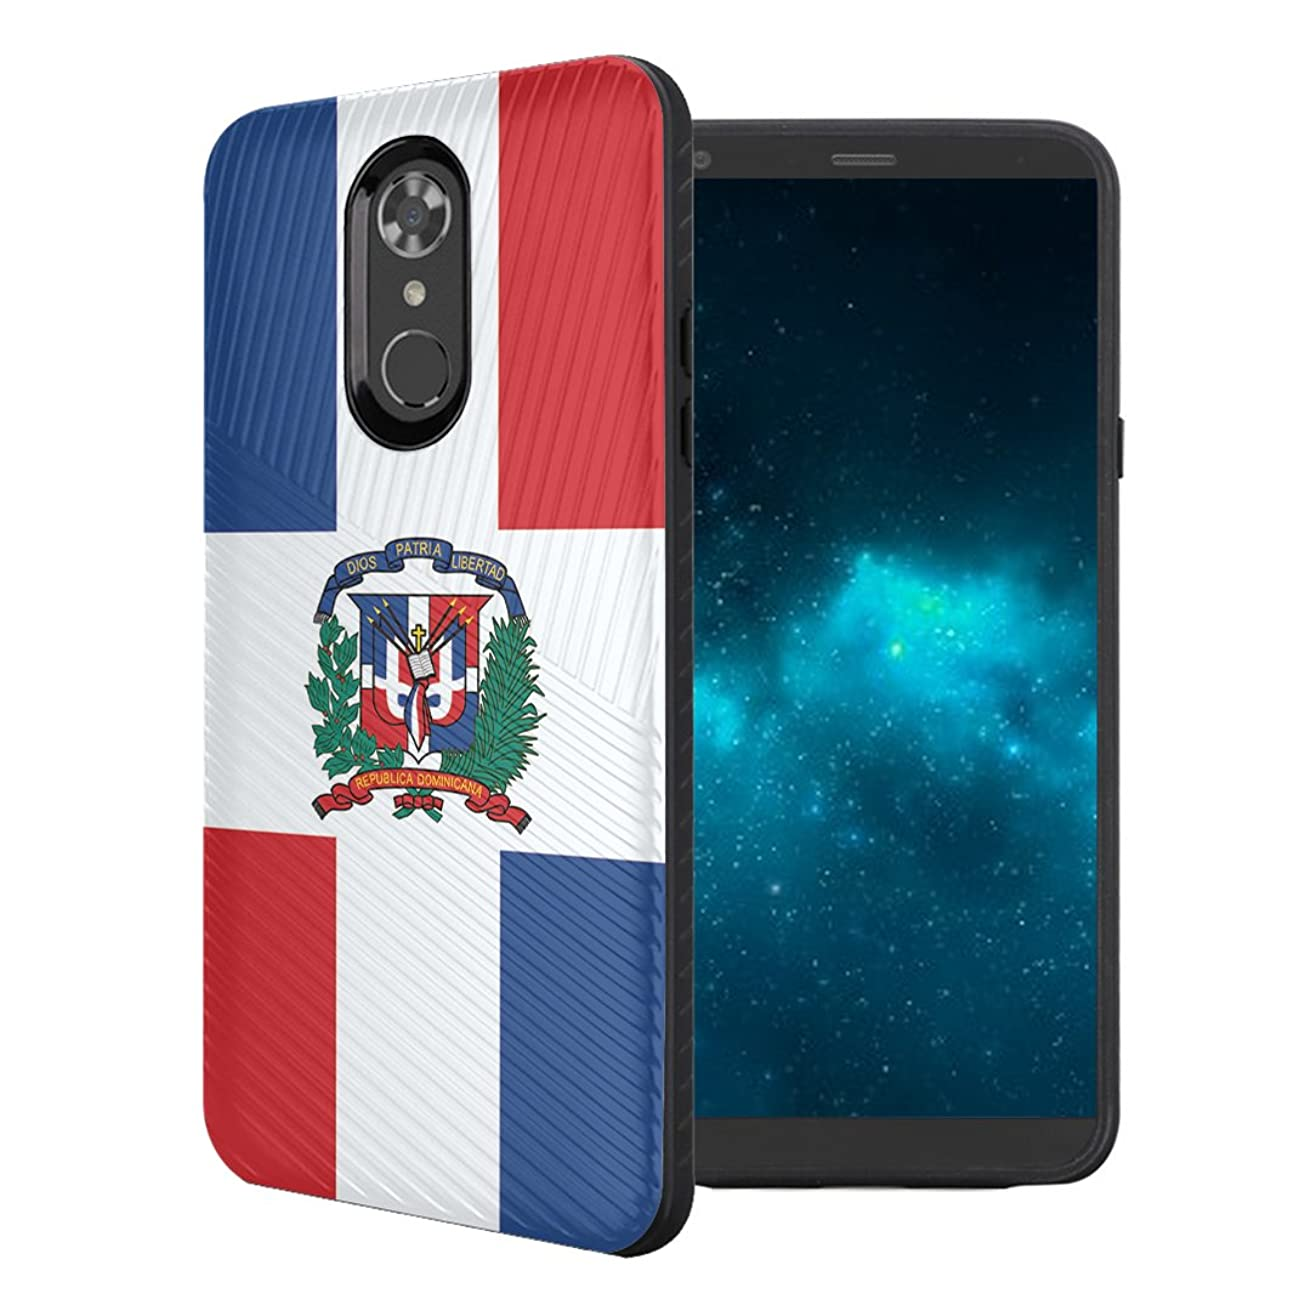 Capsule Case Compatible with LG Stylo 4 Plus, LG Stylo 4, LG Q Stylus [Embossed Diagonal Lines Hybrid Dual Layer Slim Armor Black Case] for LG Stylo 4 - (Dominican Republic Flag)